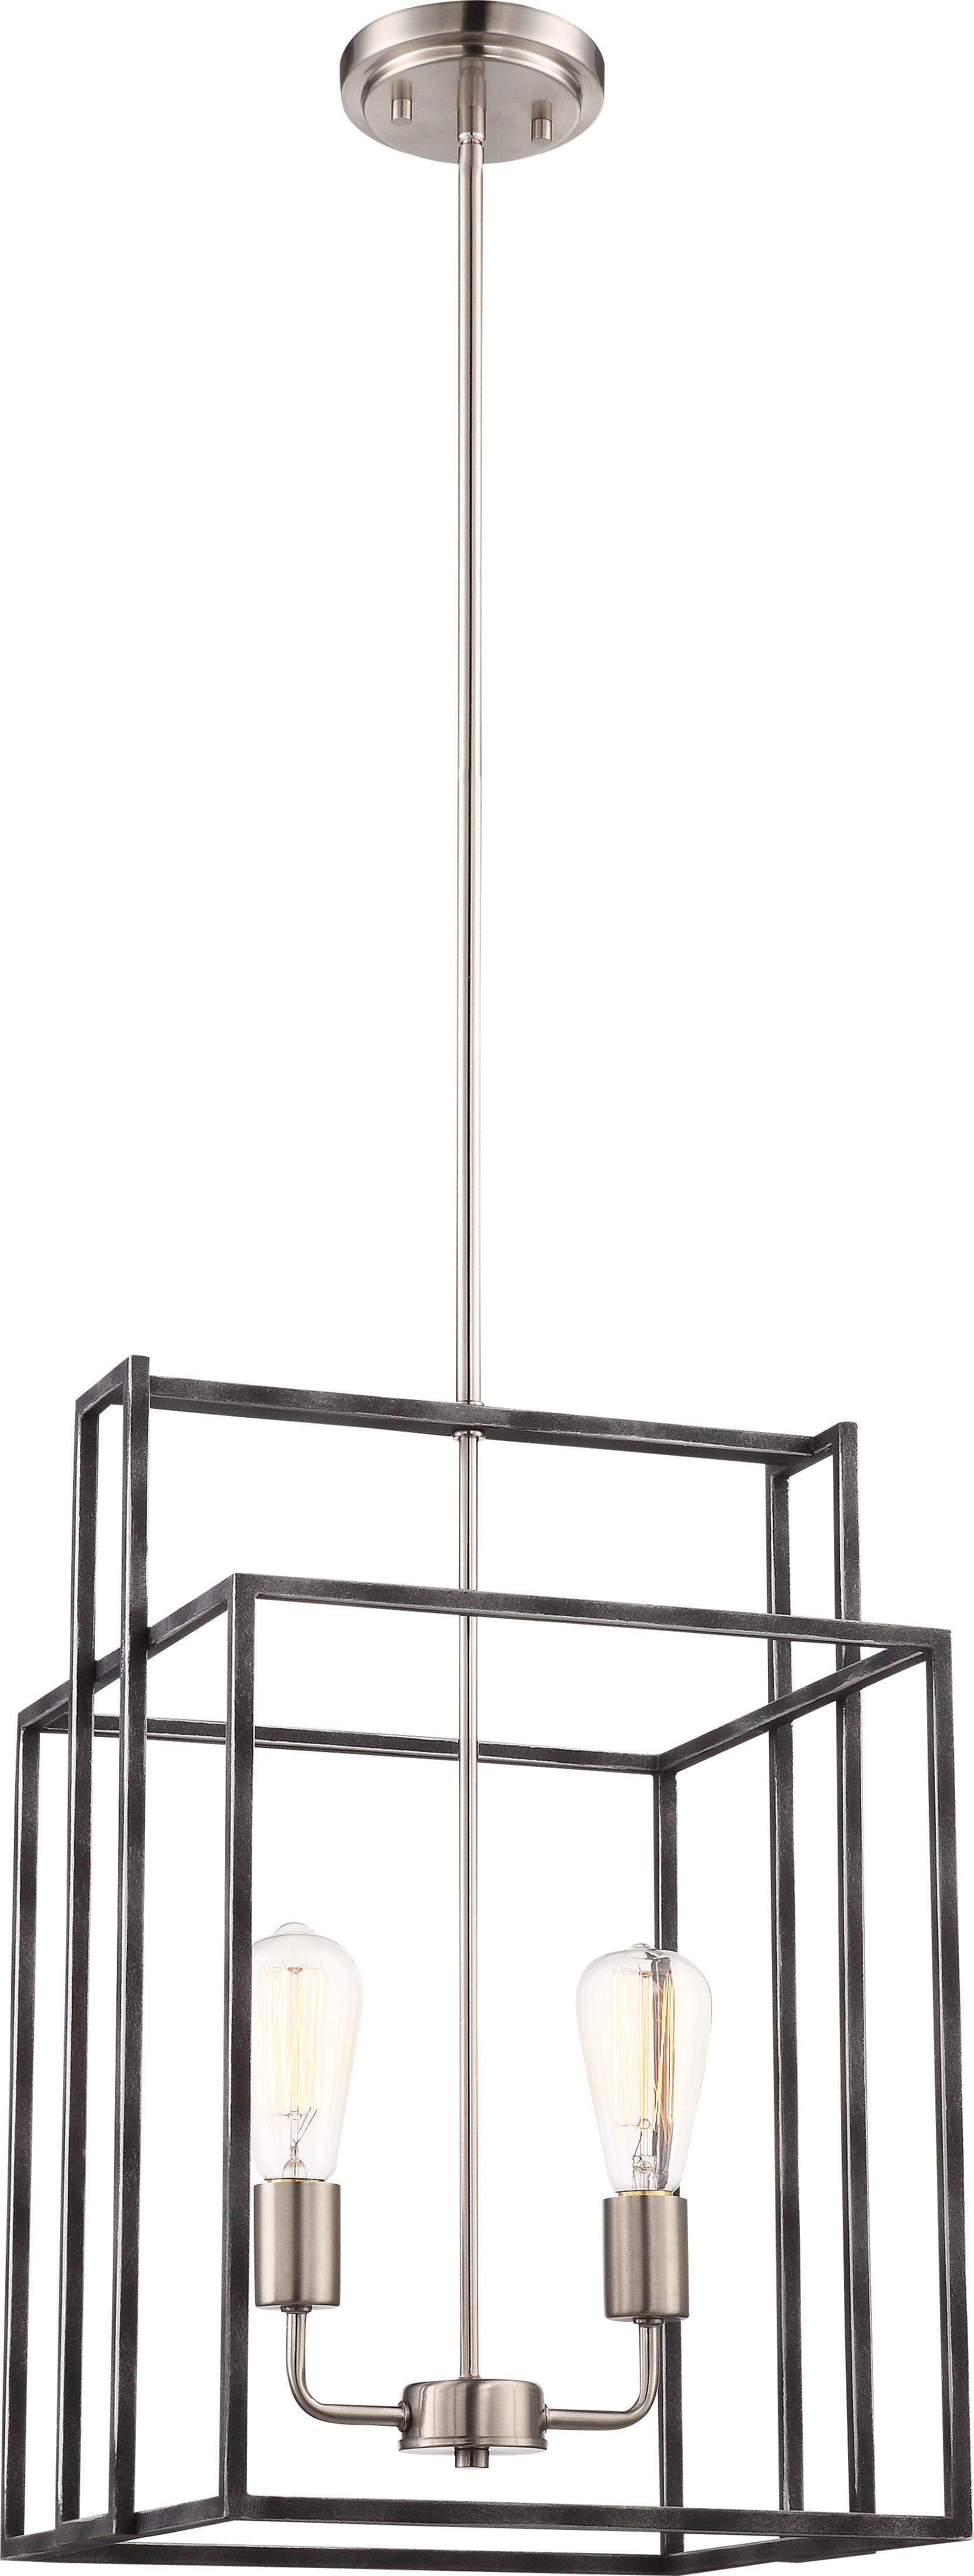 Lake 2-Light Square Pendant in Iron Black with Brushed Nickel Accents Finish